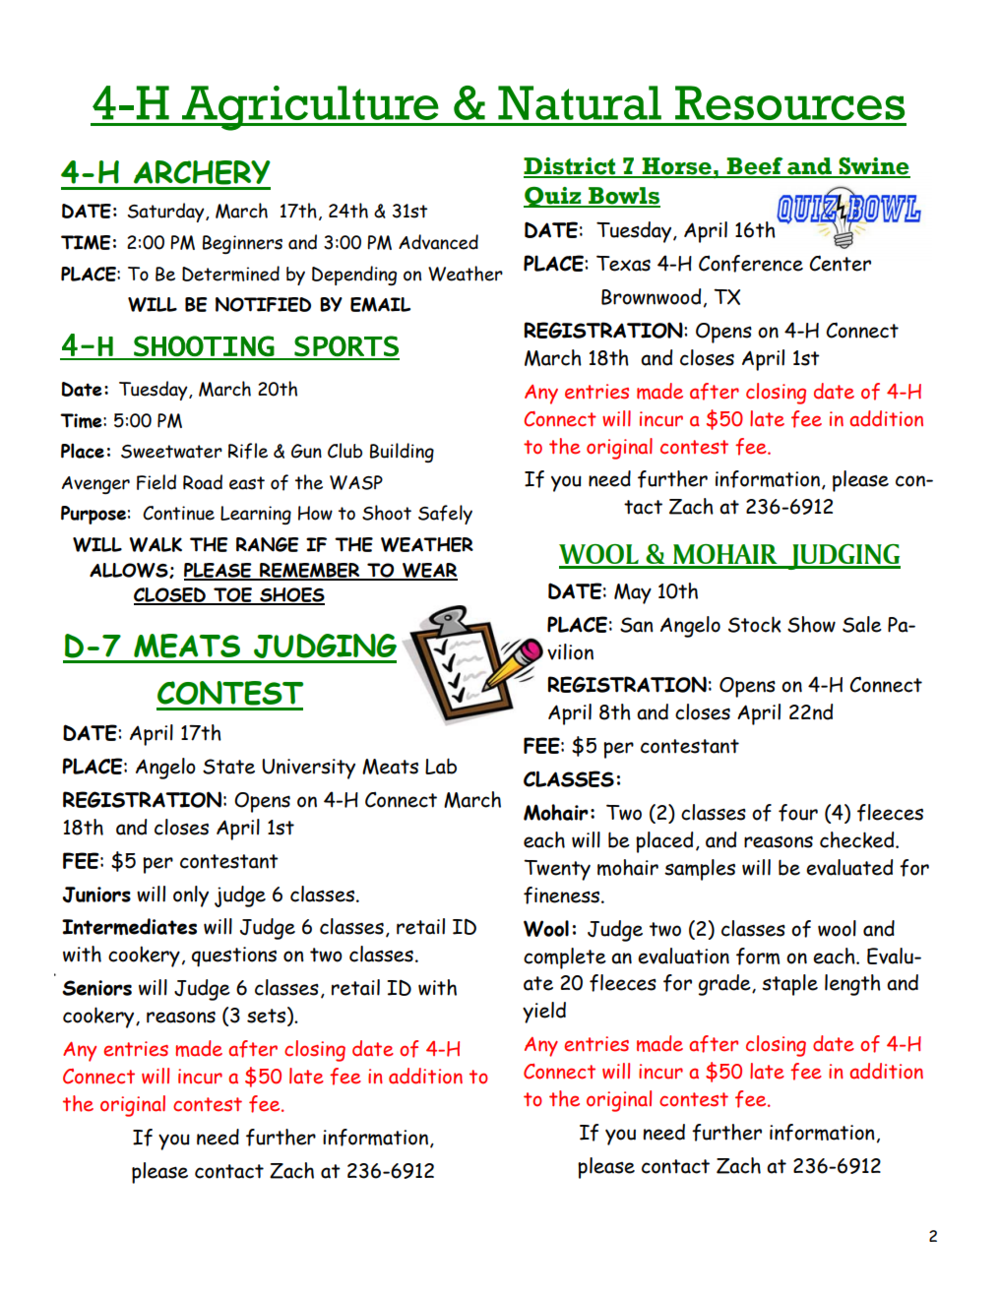 Nolan_County_4H_Newsletter-March_2019_P2.png